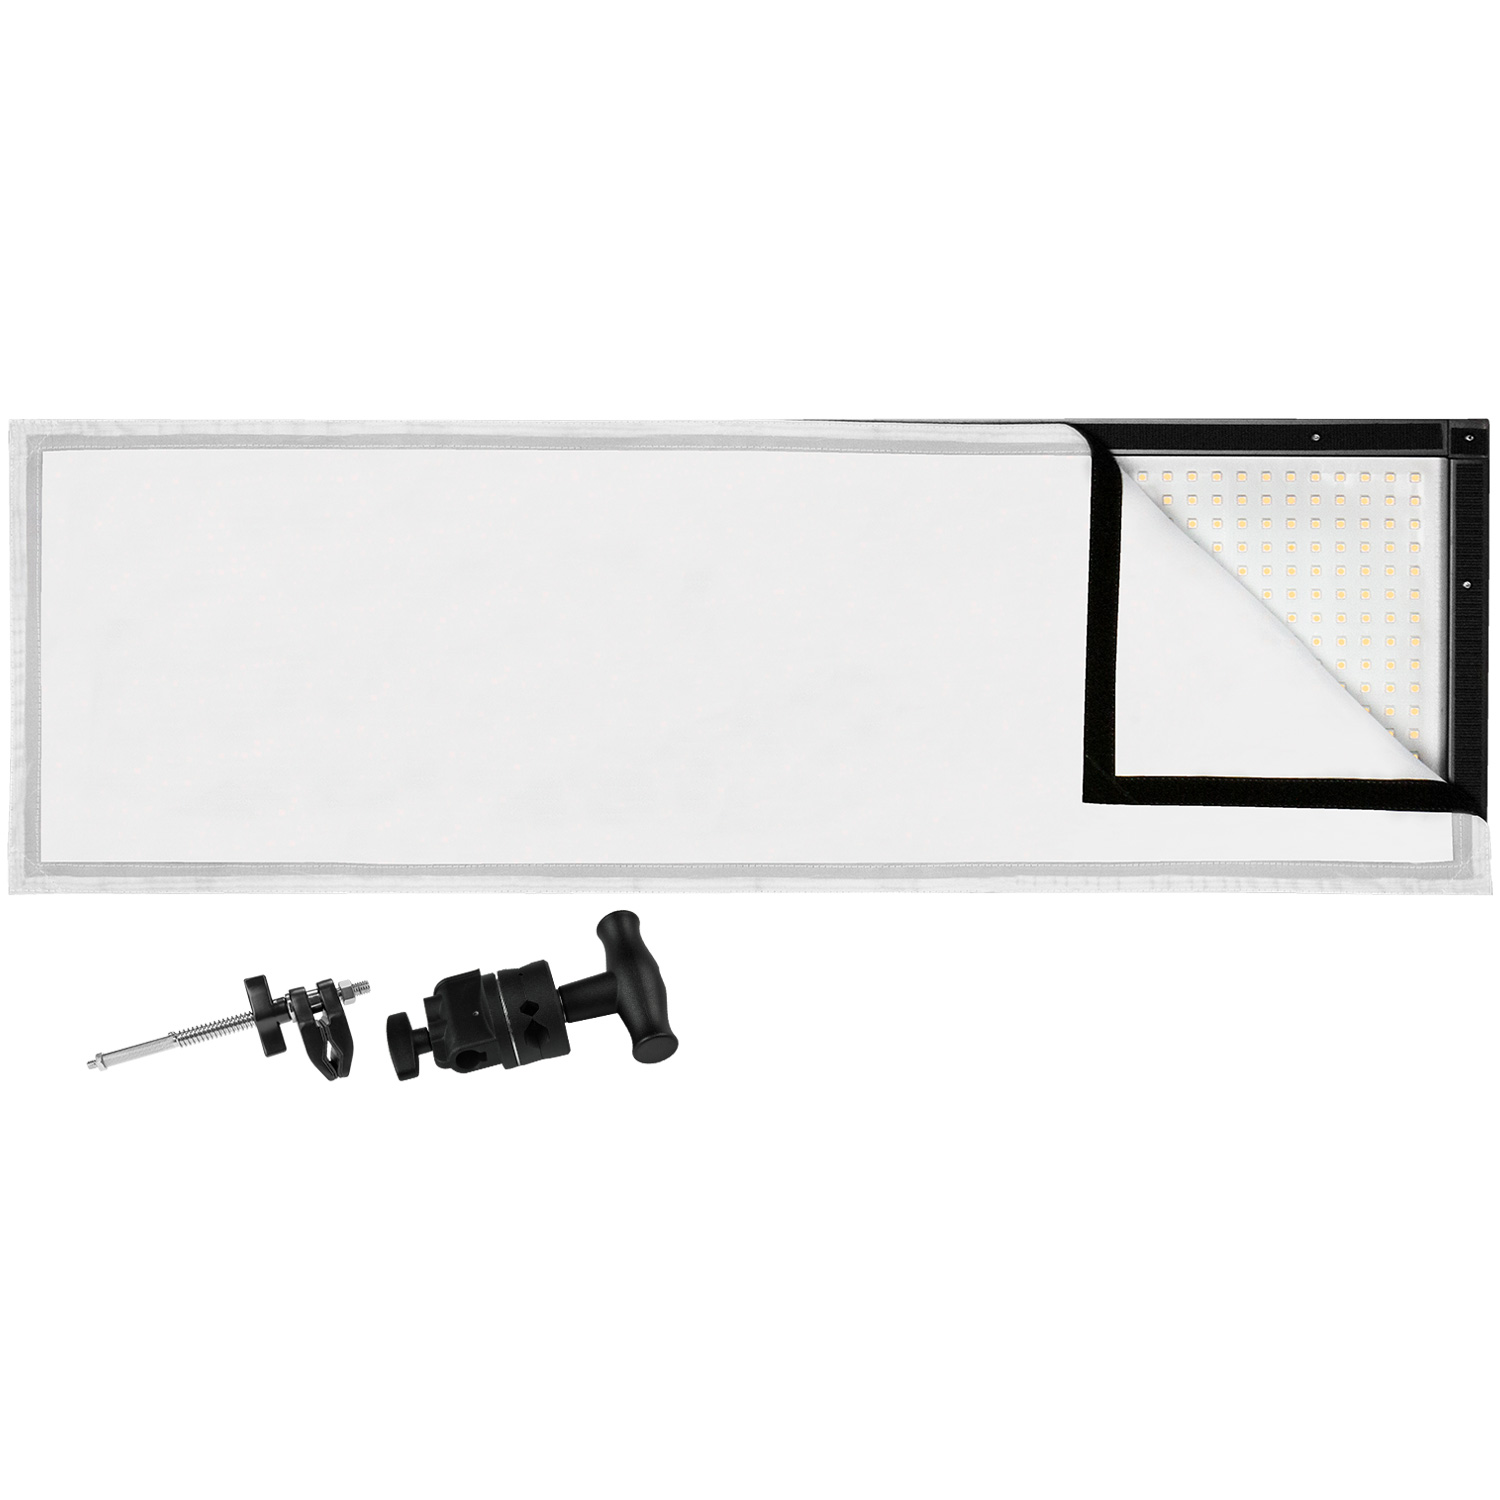 Flex Daylight LED 1-Light Set (1' x 3', US/CA Plug)